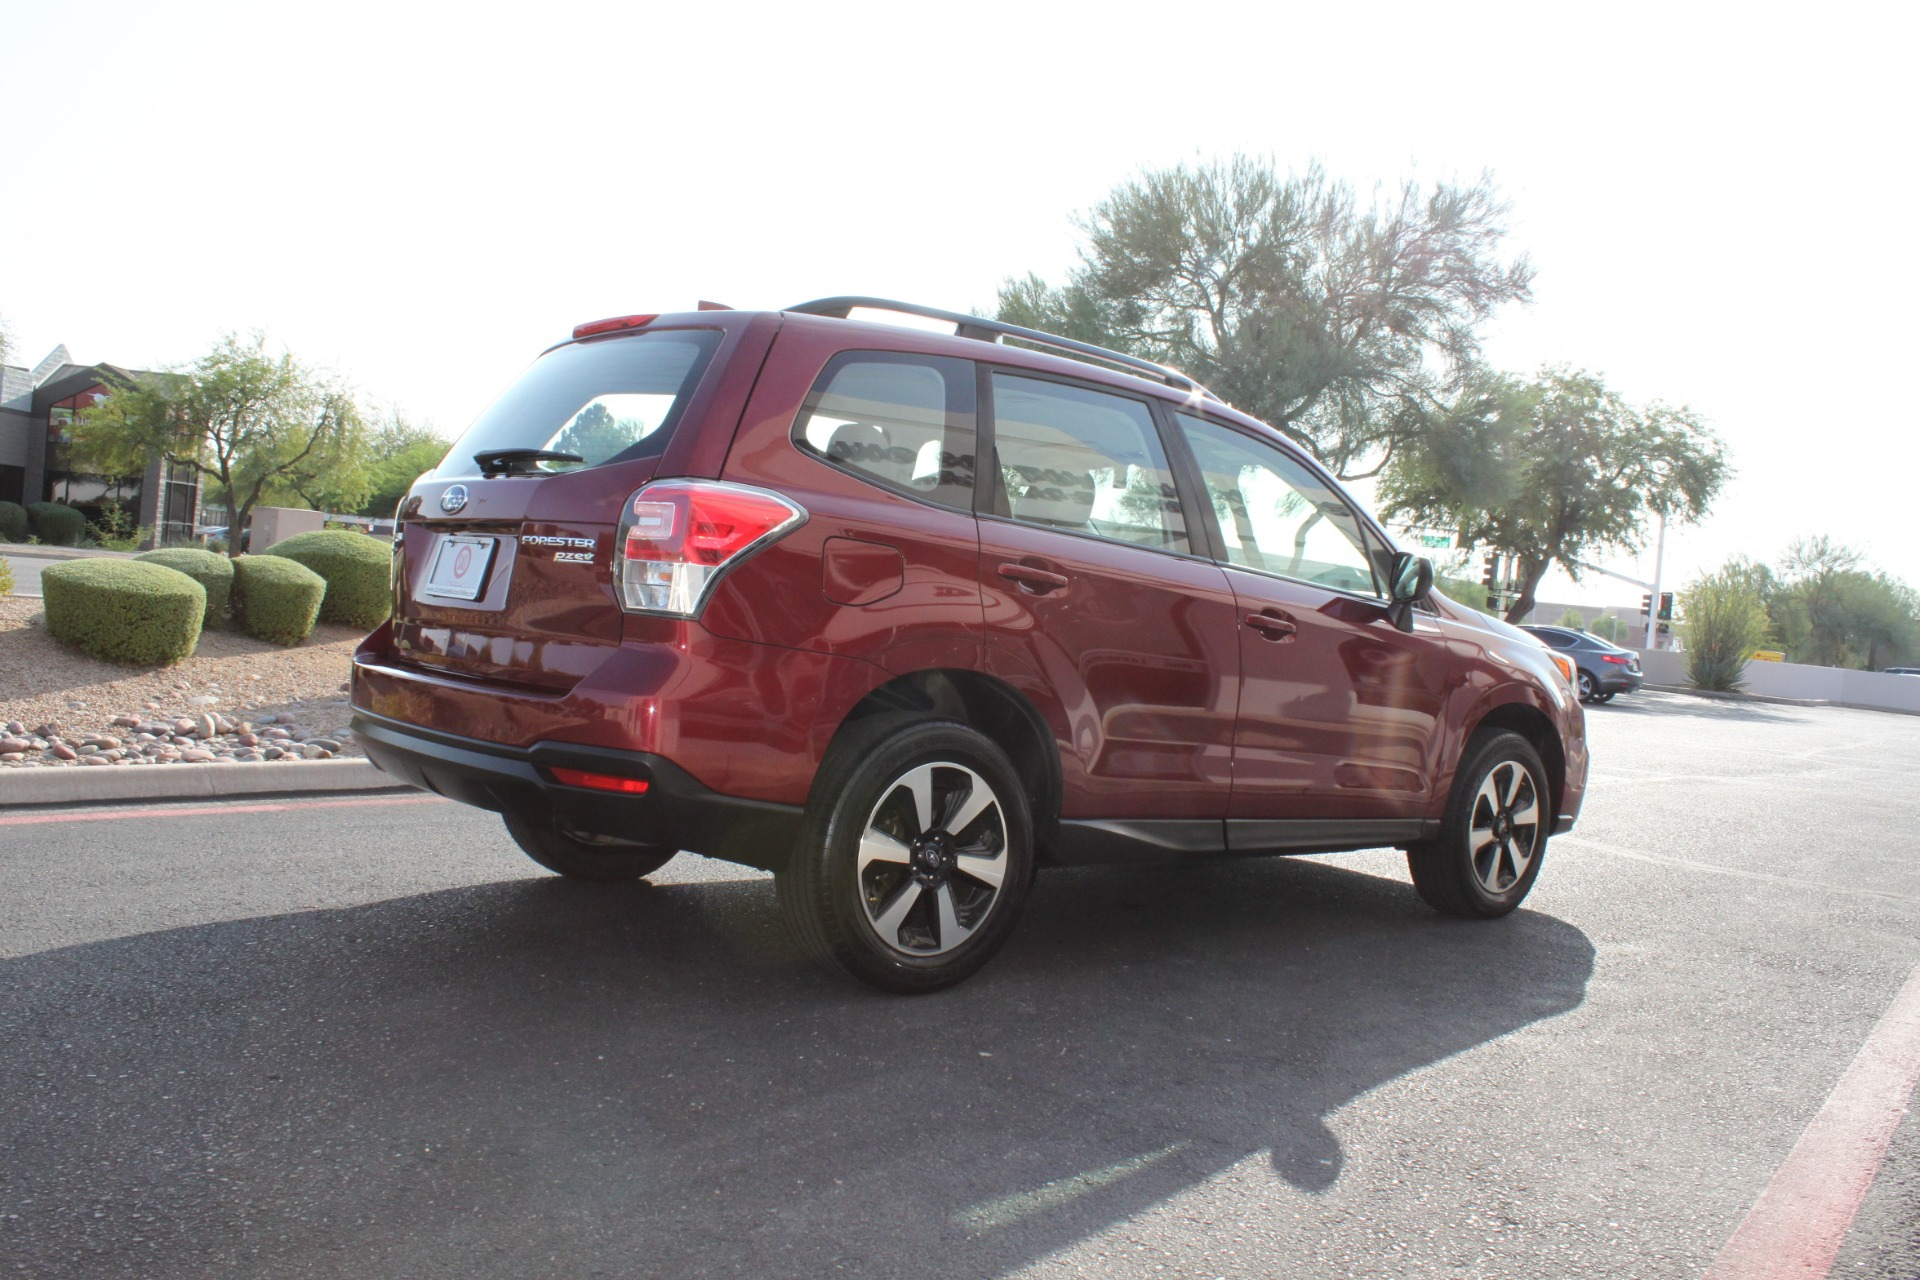 Used-2017-Subaru-Forester-25i-All-Wheel-Drive-Chevrolet